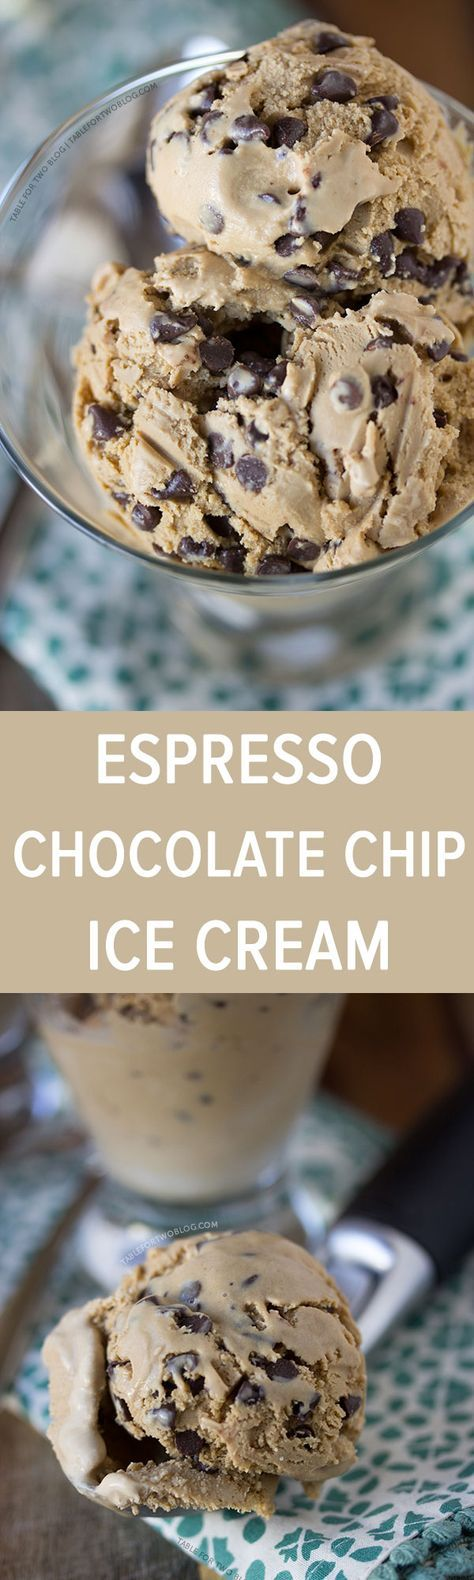 Beth said this was really good Espresso Chocolate Chip Ice Cream from www.tablefortwobl...